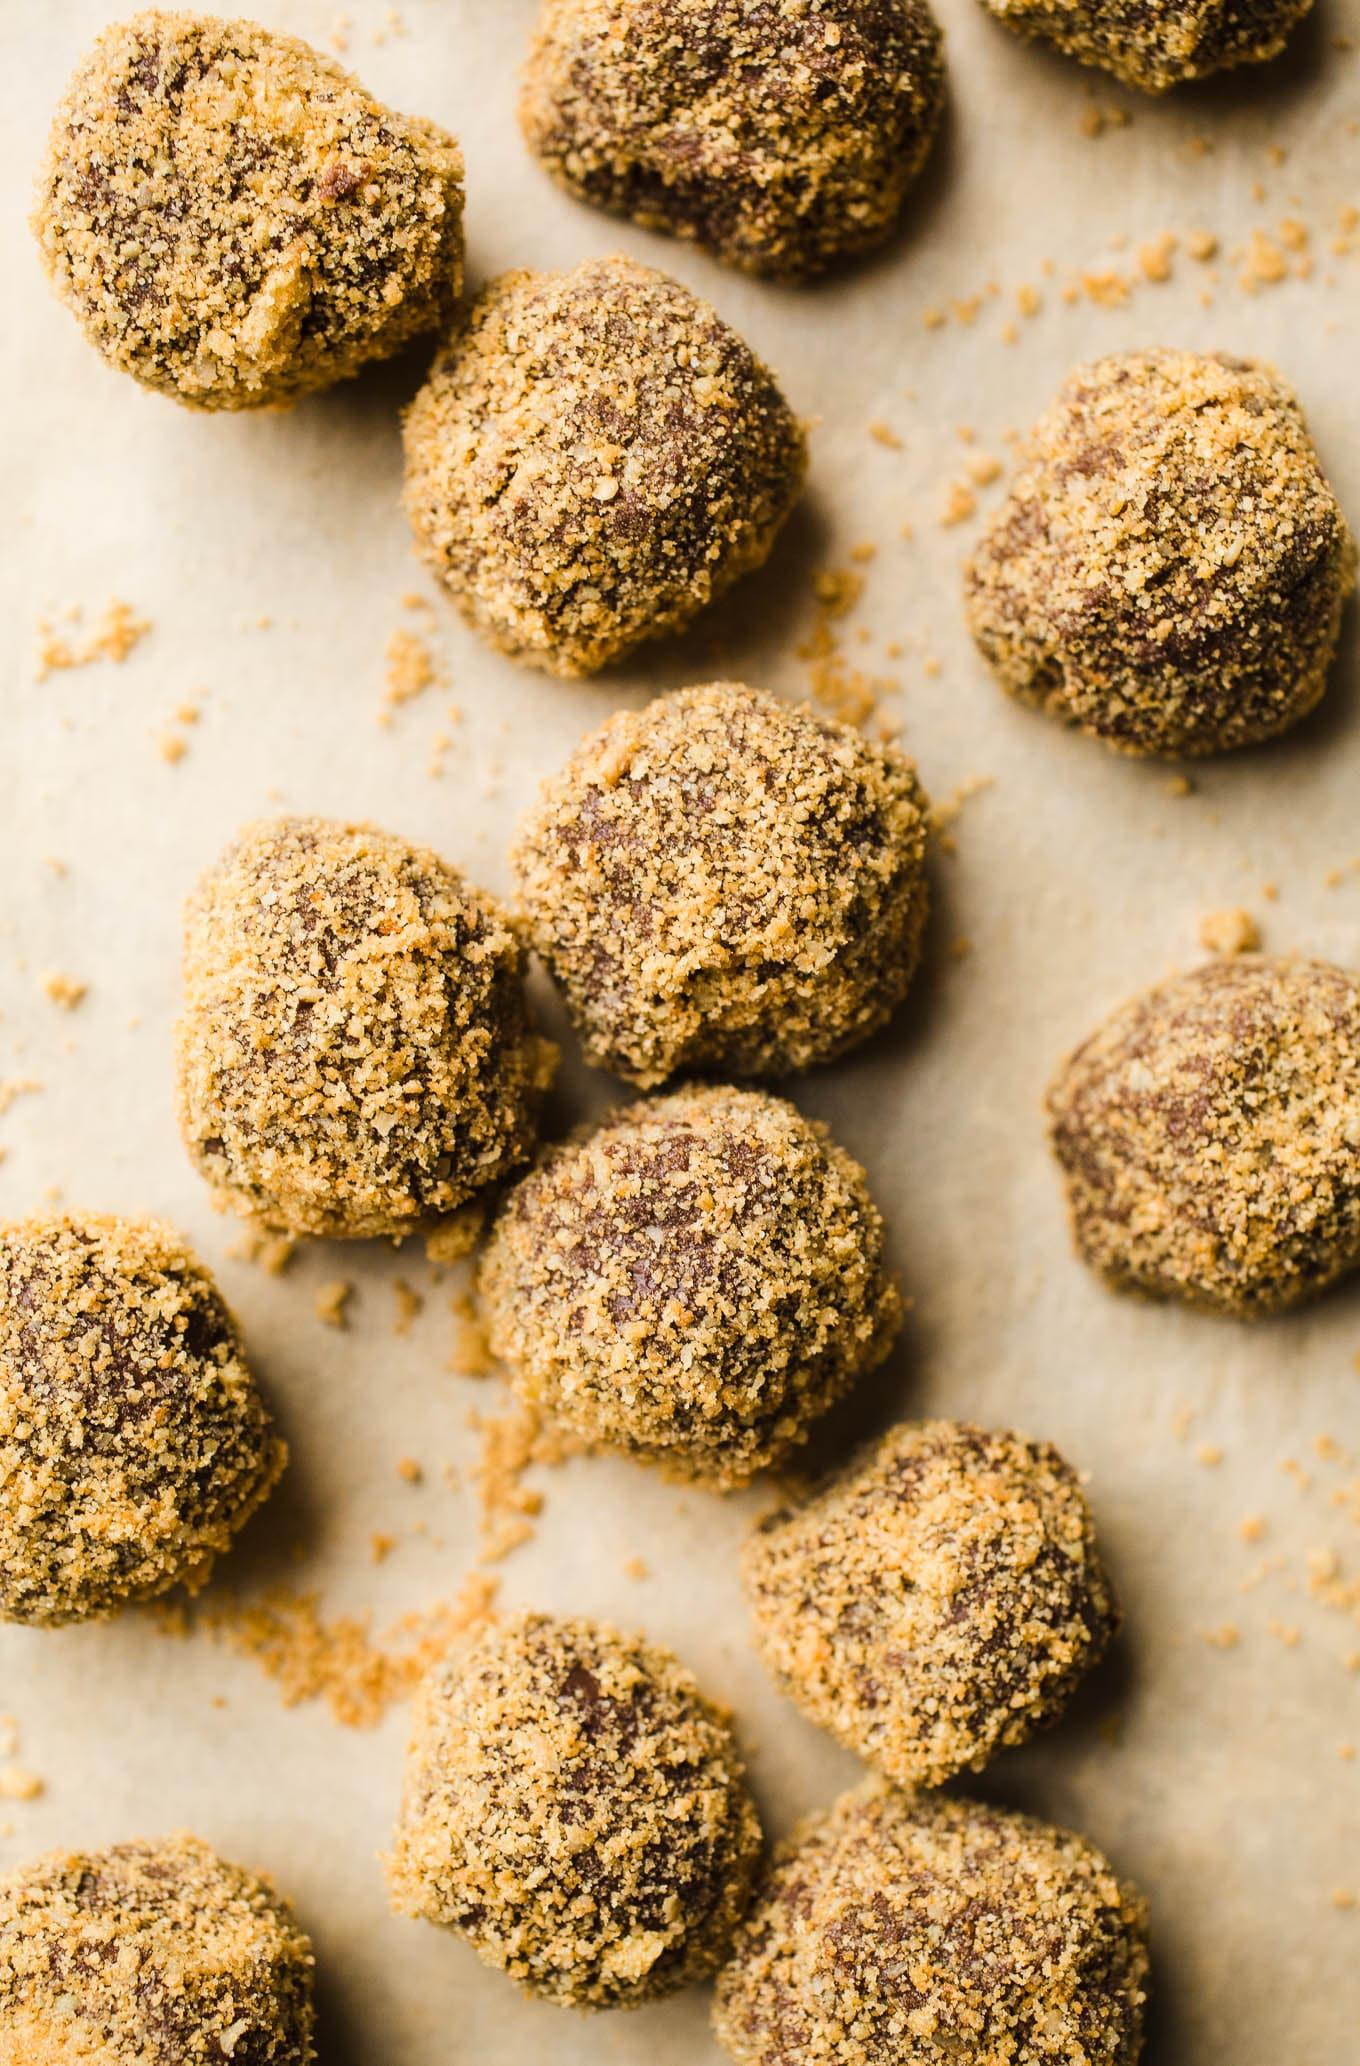 Easy Gingerbread Truffles made with 5 ingredients! A delicious gluten-free and vegan gingerbread dessert recipe. Perfect for the holidays!